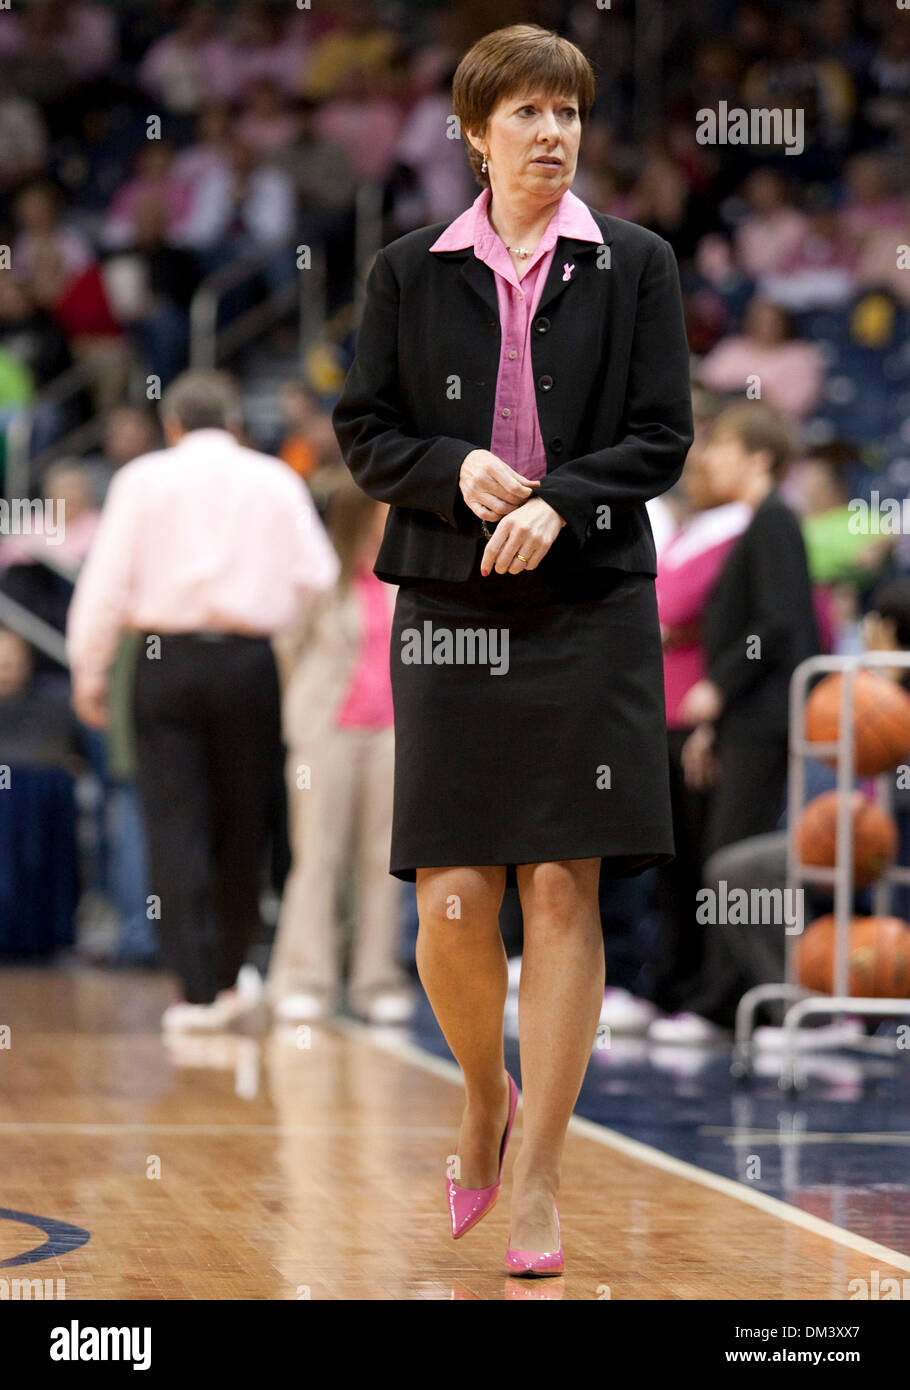 Muffet Mcgraw Stock Photos & Muffet Mcgraw Stock Images ...